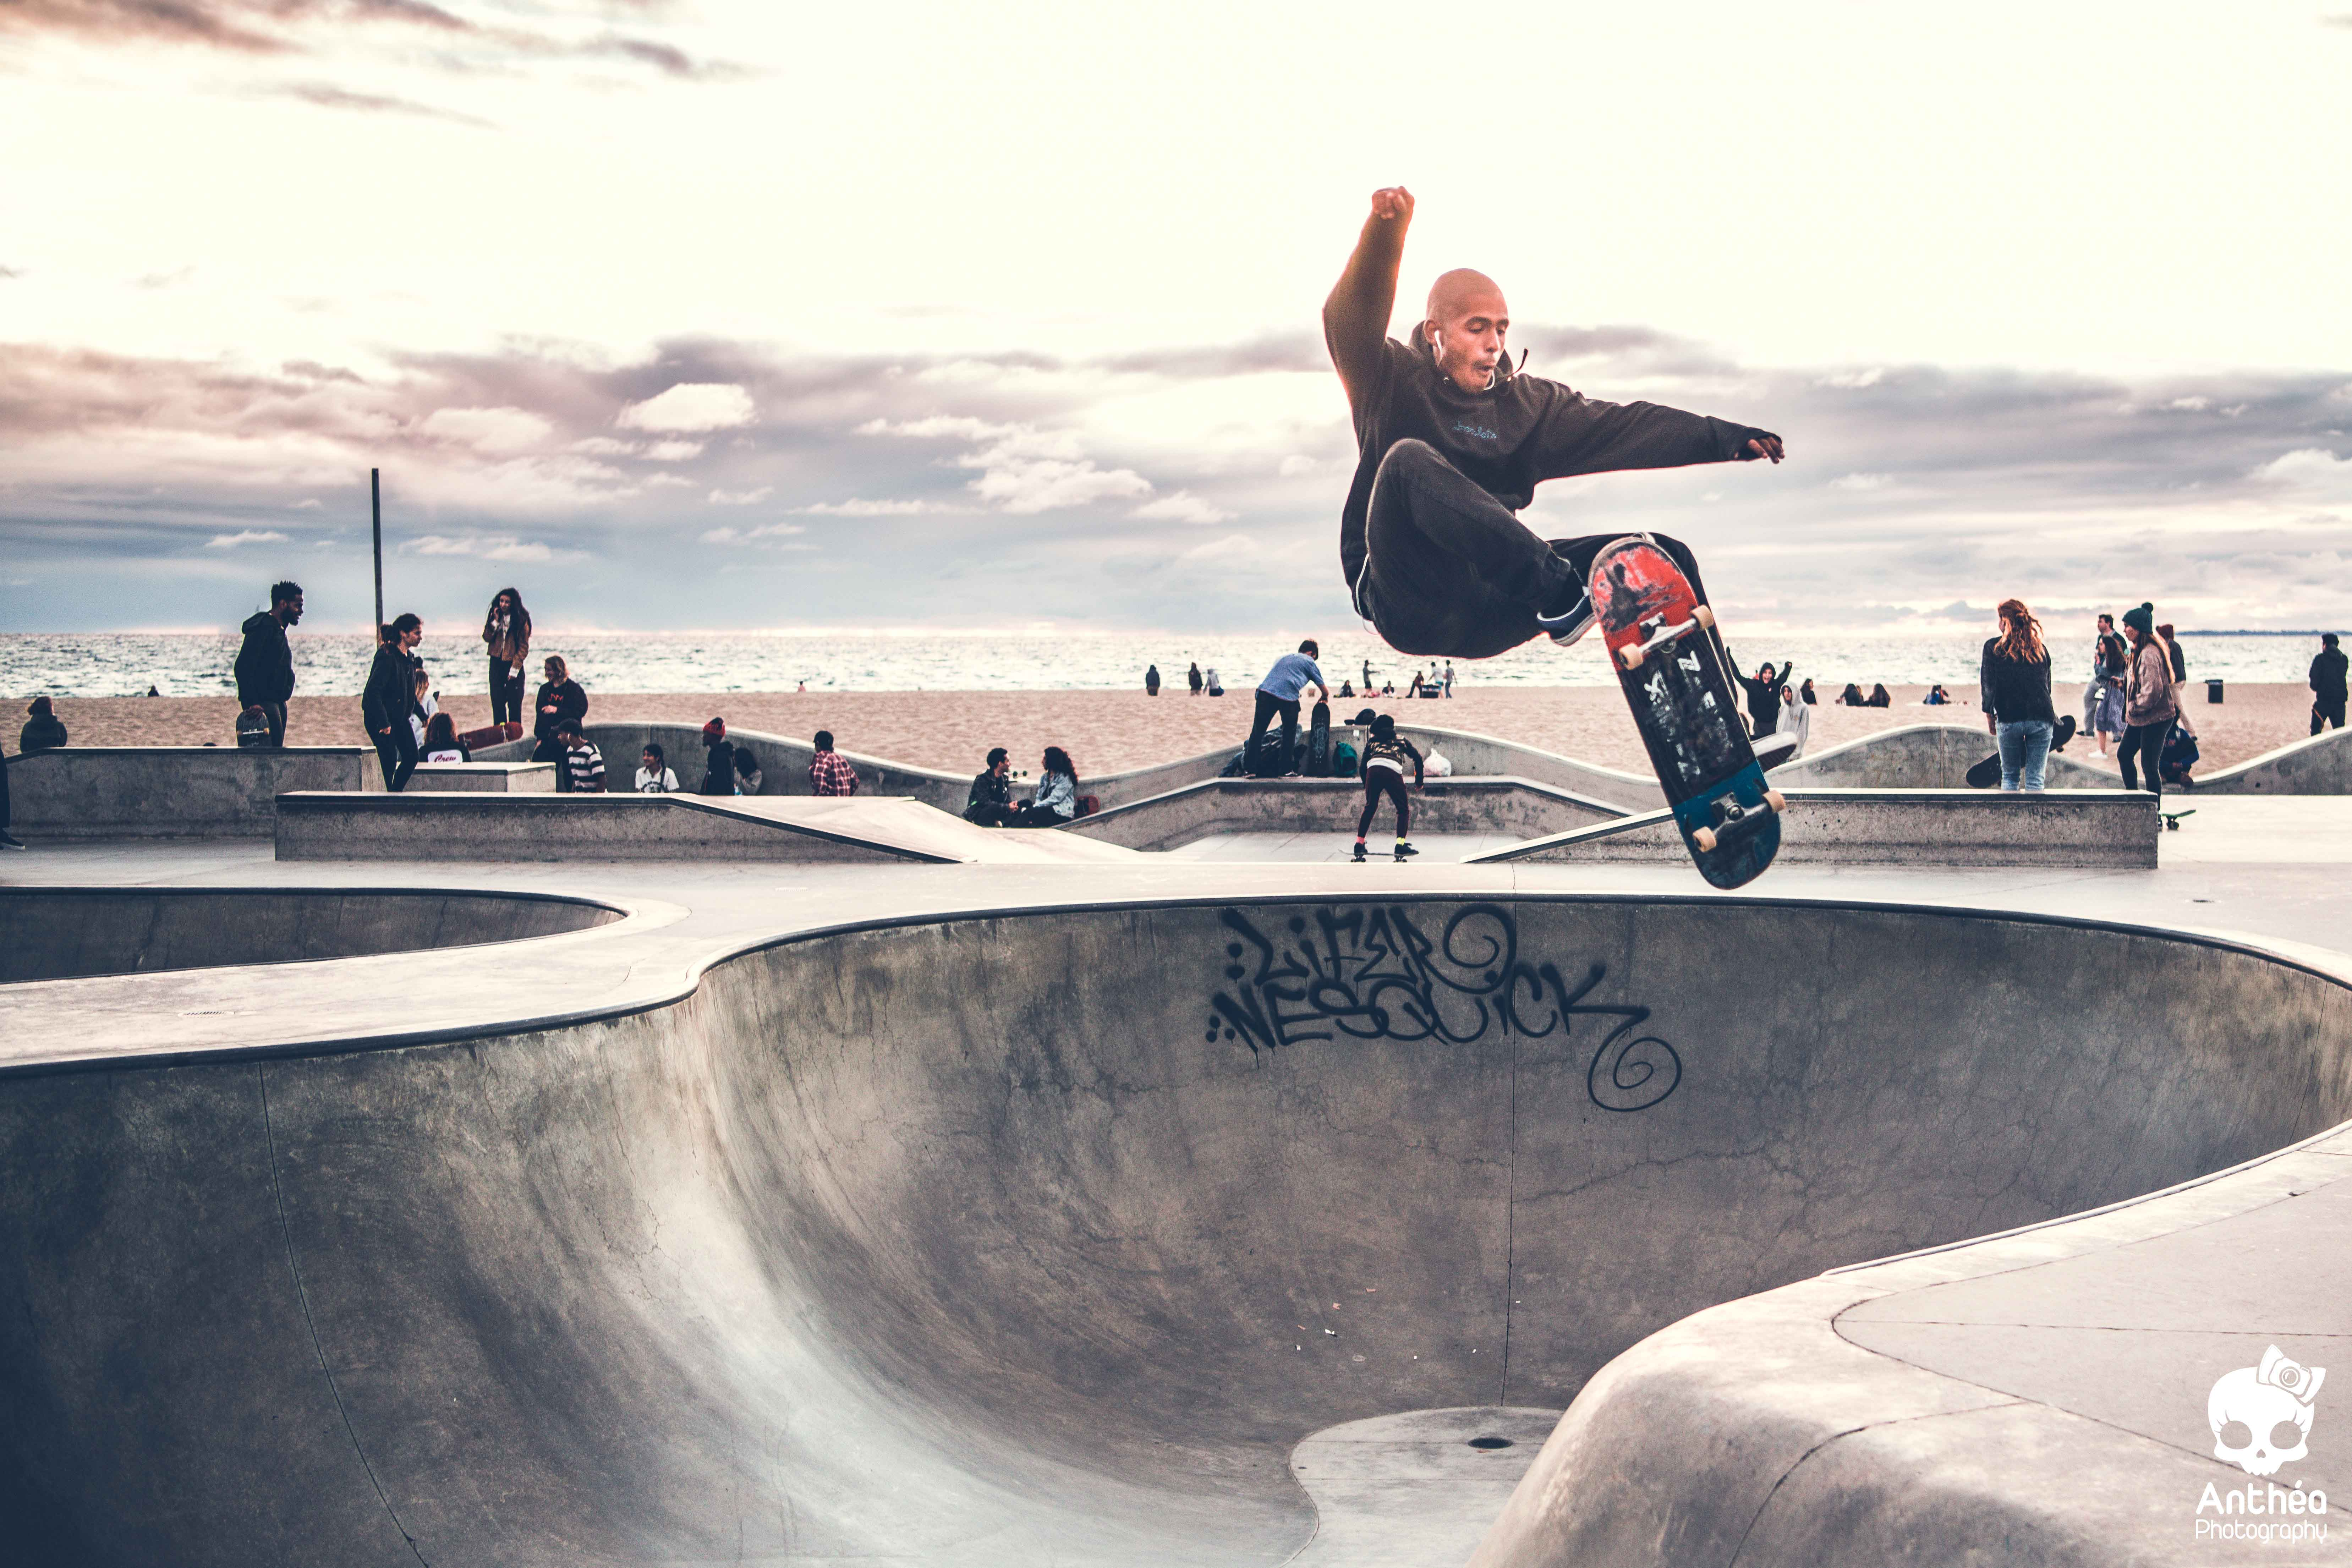 Skate_Venice_Beach_by_Anthea_Photography